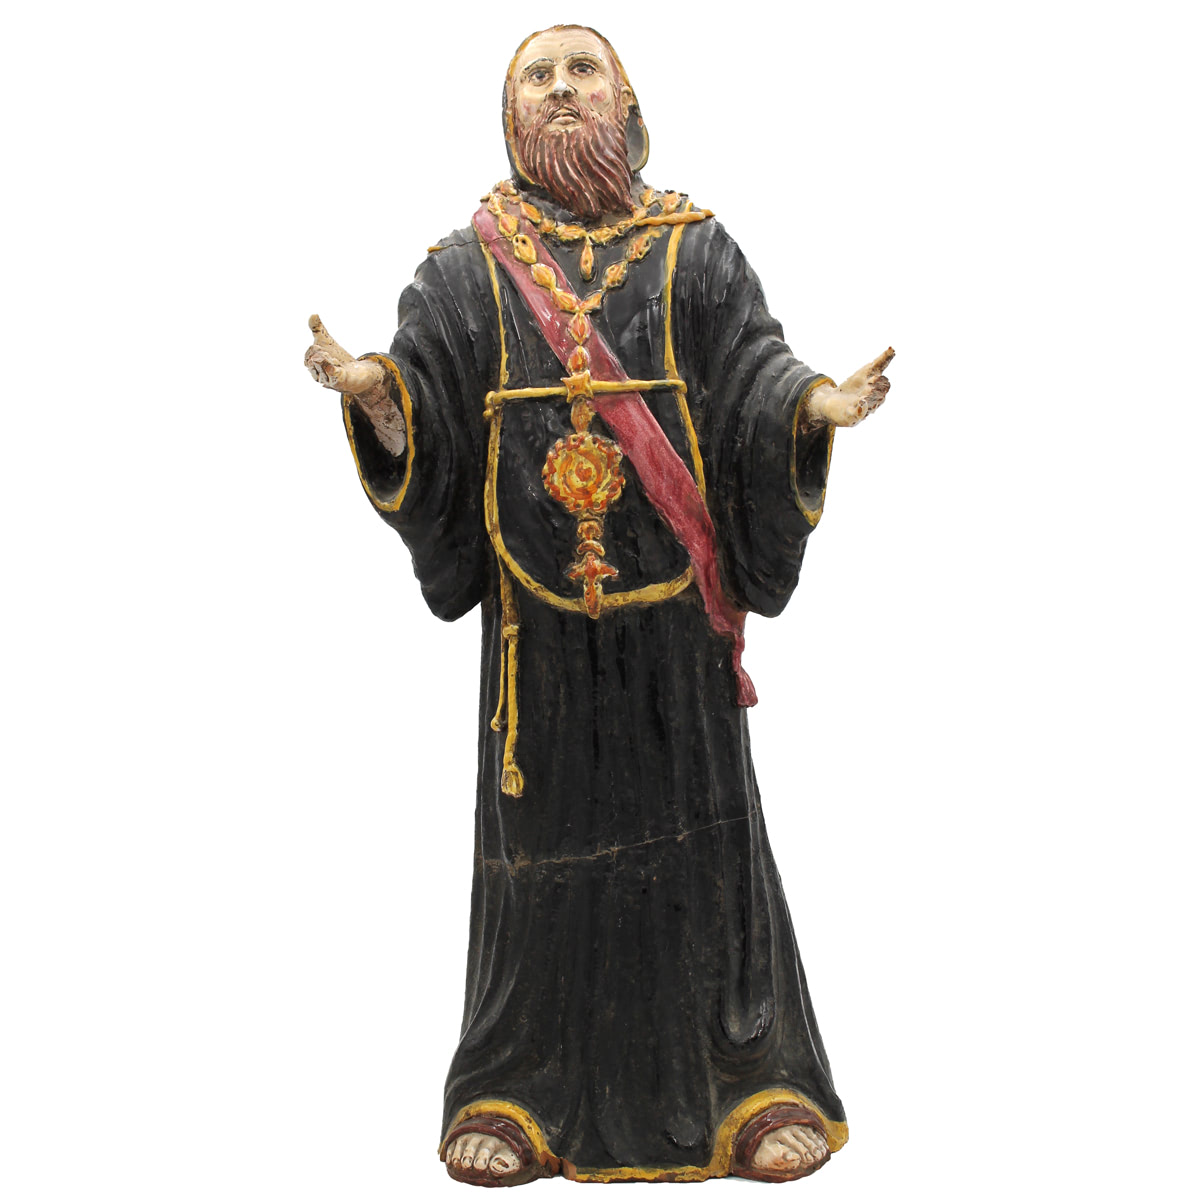 FIGURA DI MONACO-FIGURE OF MONK